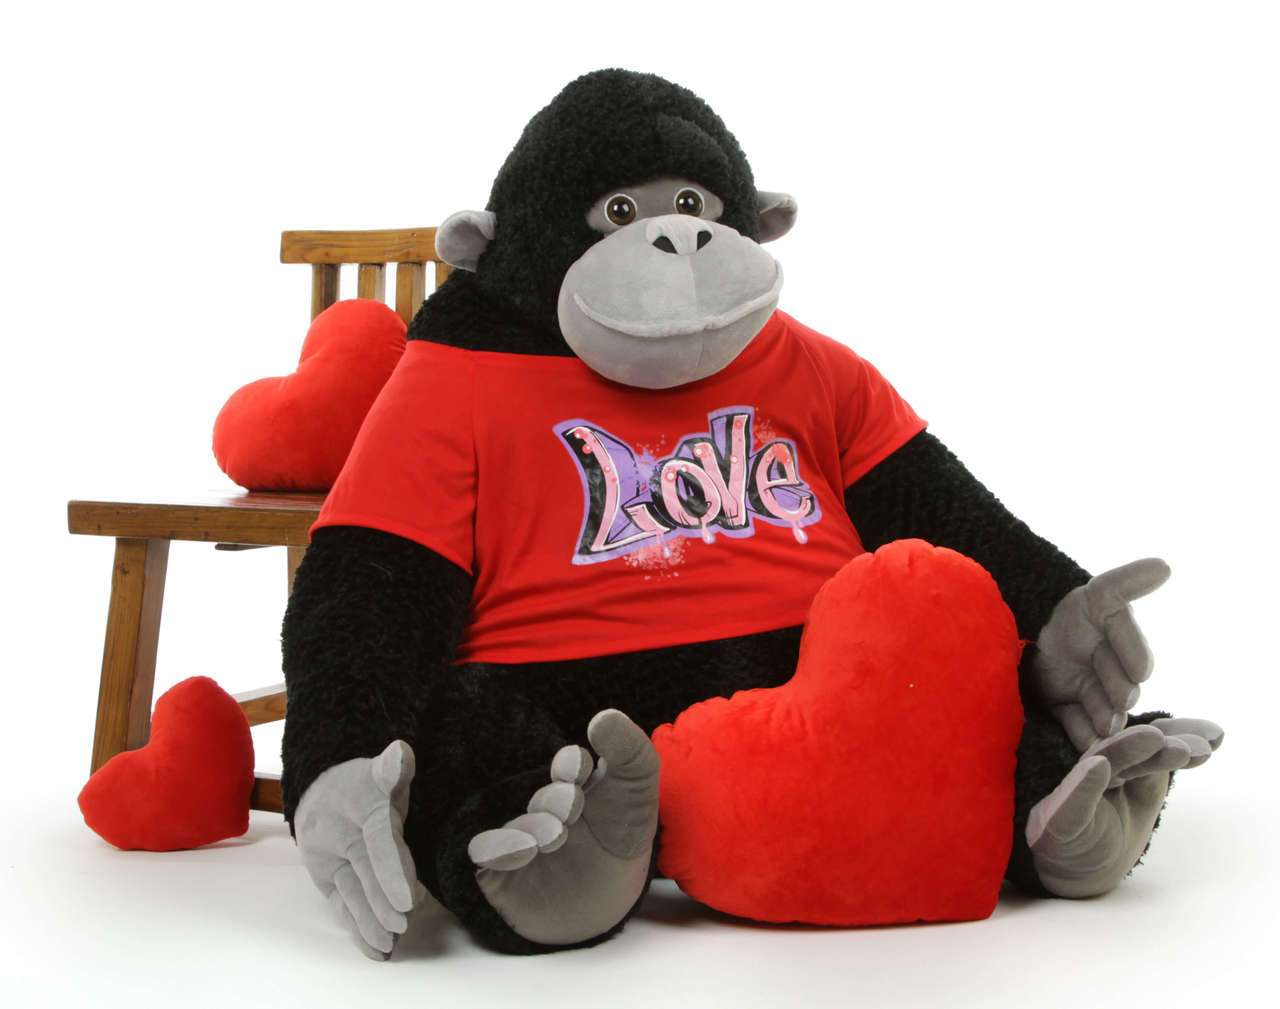 Free Gift with Purchase #1 - 13 inch Plush Red Heart Pillow!